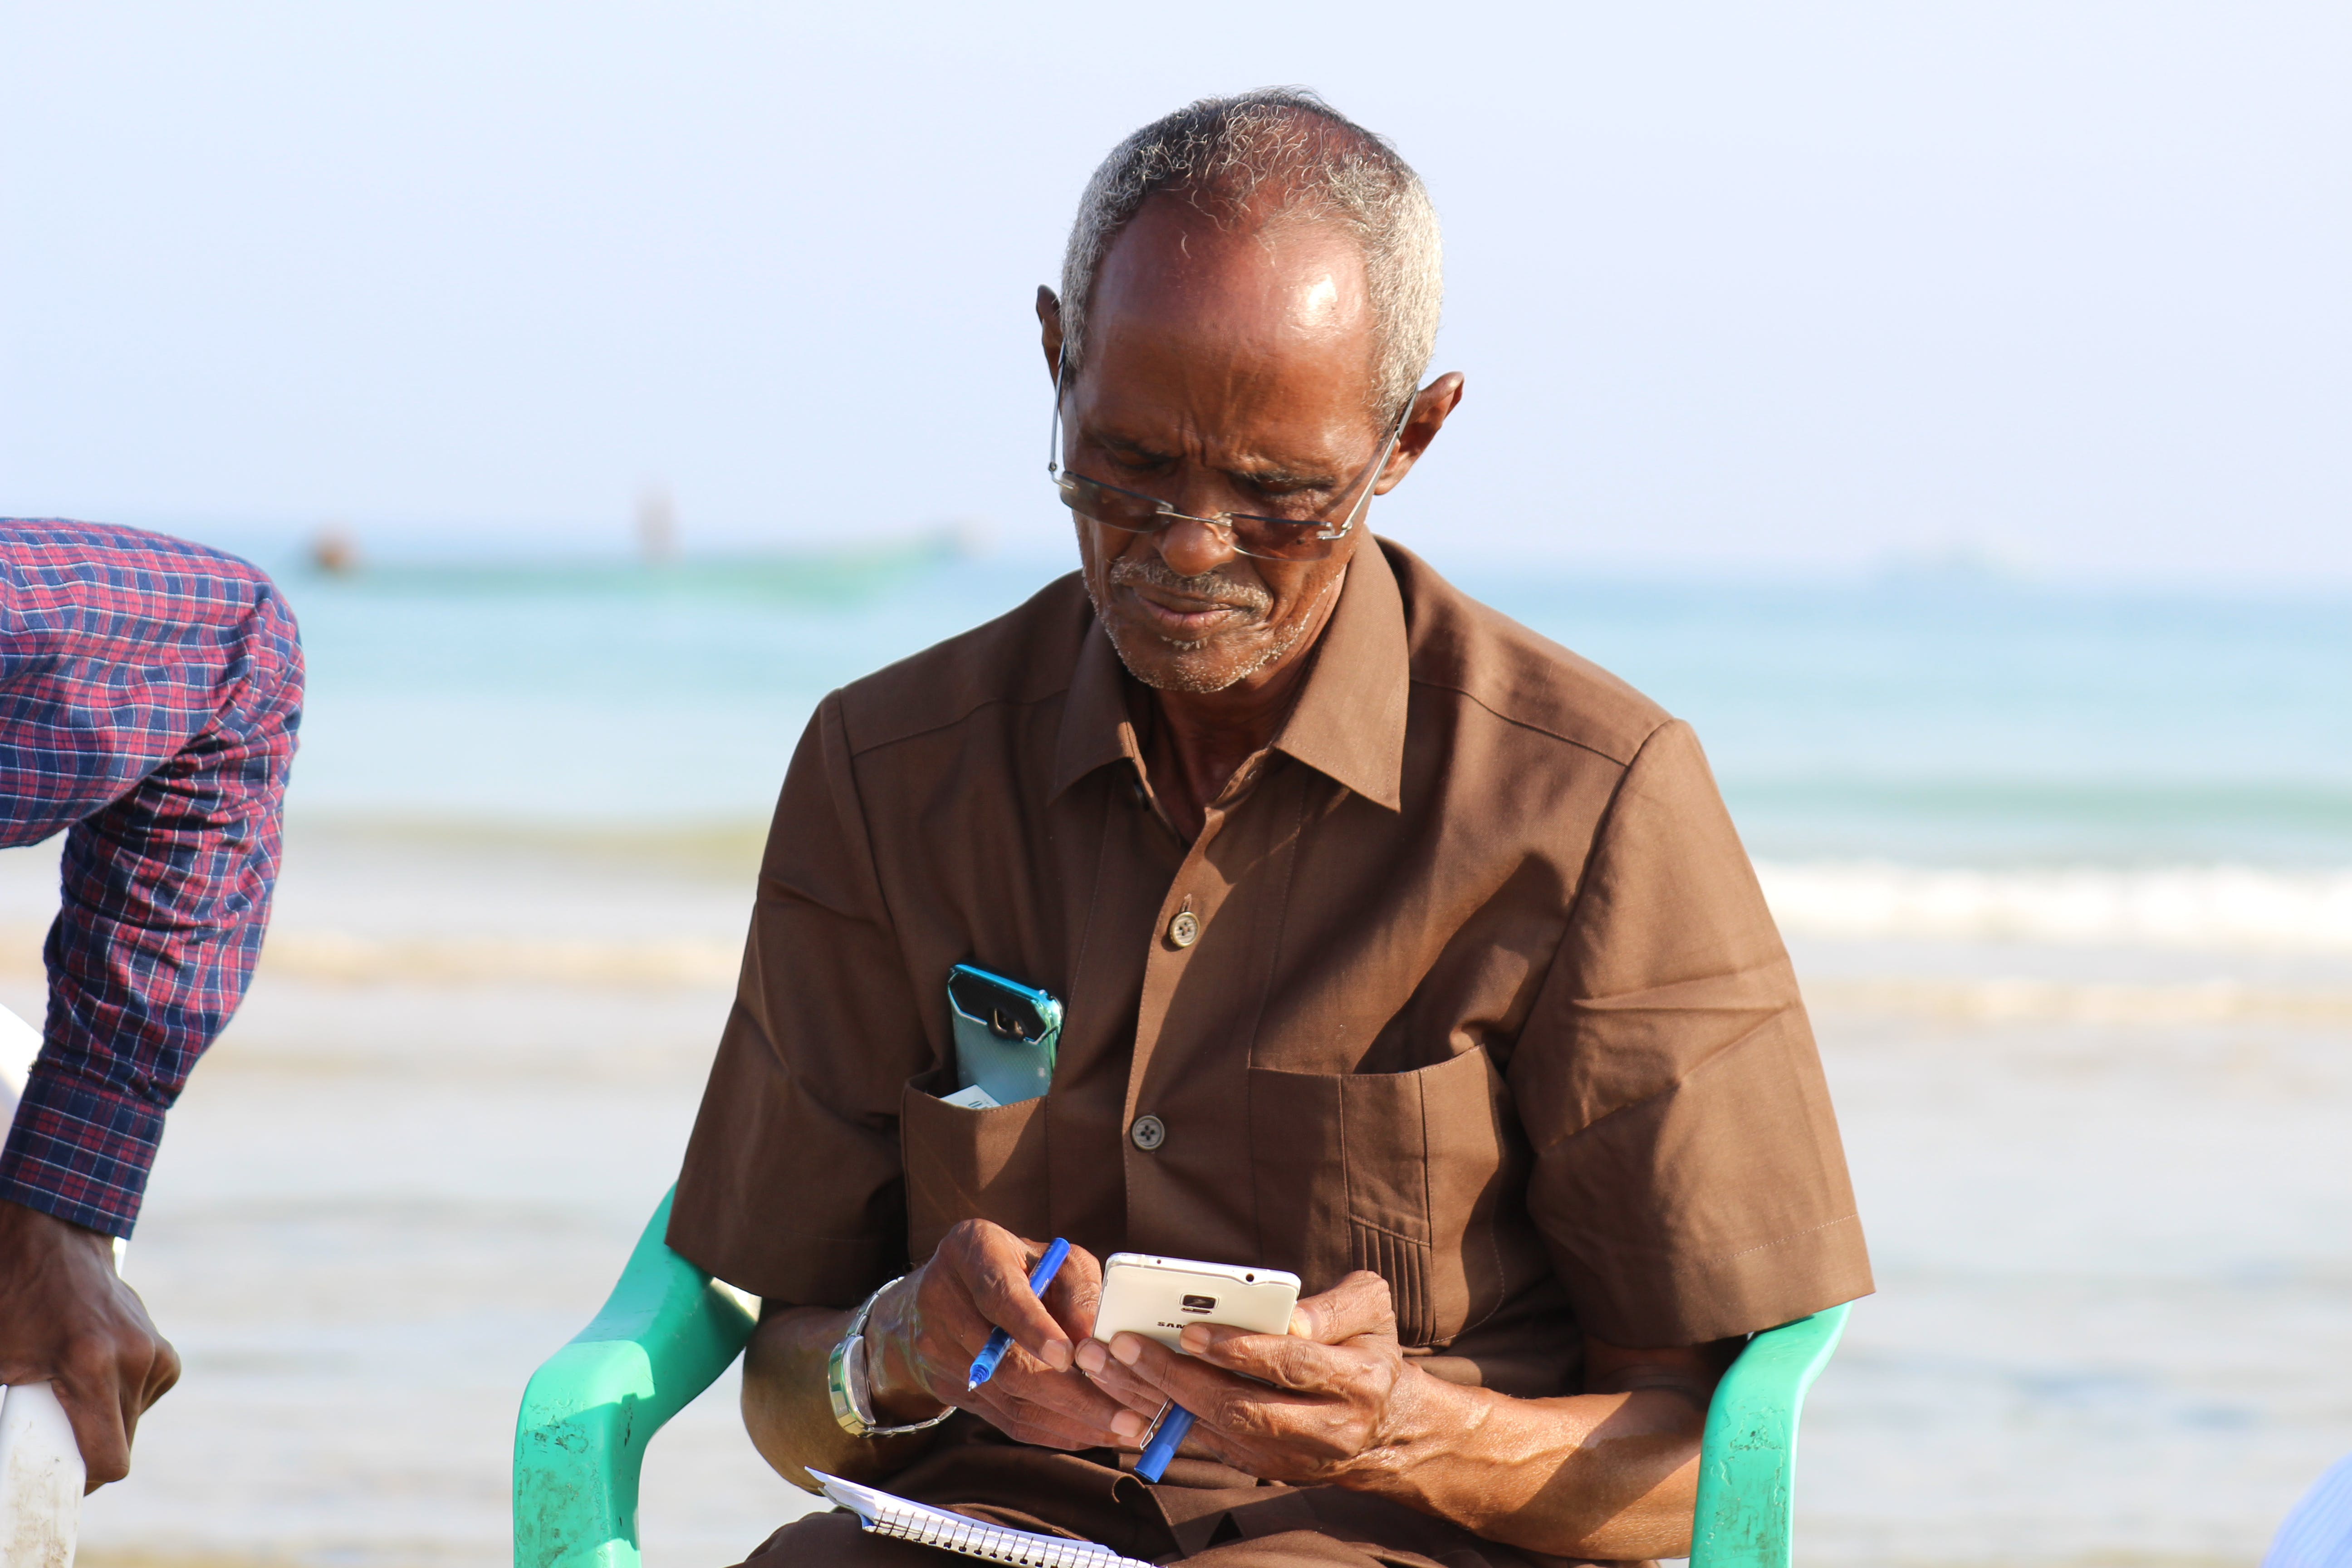 Free stock photo of old man, smartphone